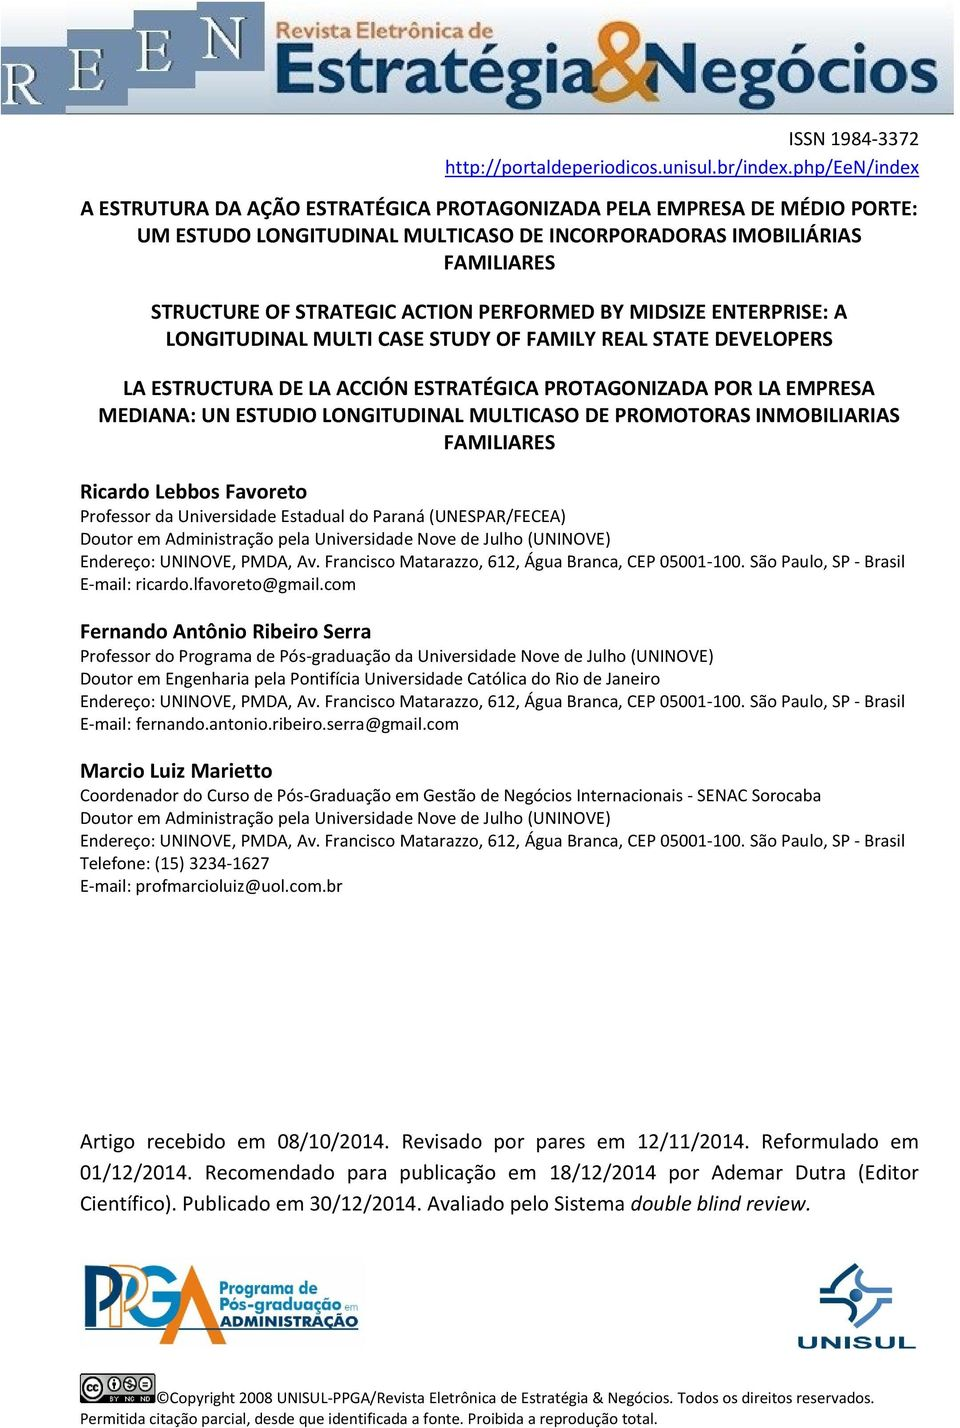 PERFORMED BY MIDSIZE ENTERPRISE: A LONGITUDINAL MULTI CASE STUDY OF FAMILY REAL STATE DEVELOPERS LA ESTRUCTURA DE LA ACCIÓN ESTRATÉGICA PROTAGONIZADA POR LA EMPRESA MEDIANA: UN ESTUDIO LONGITUDINAL